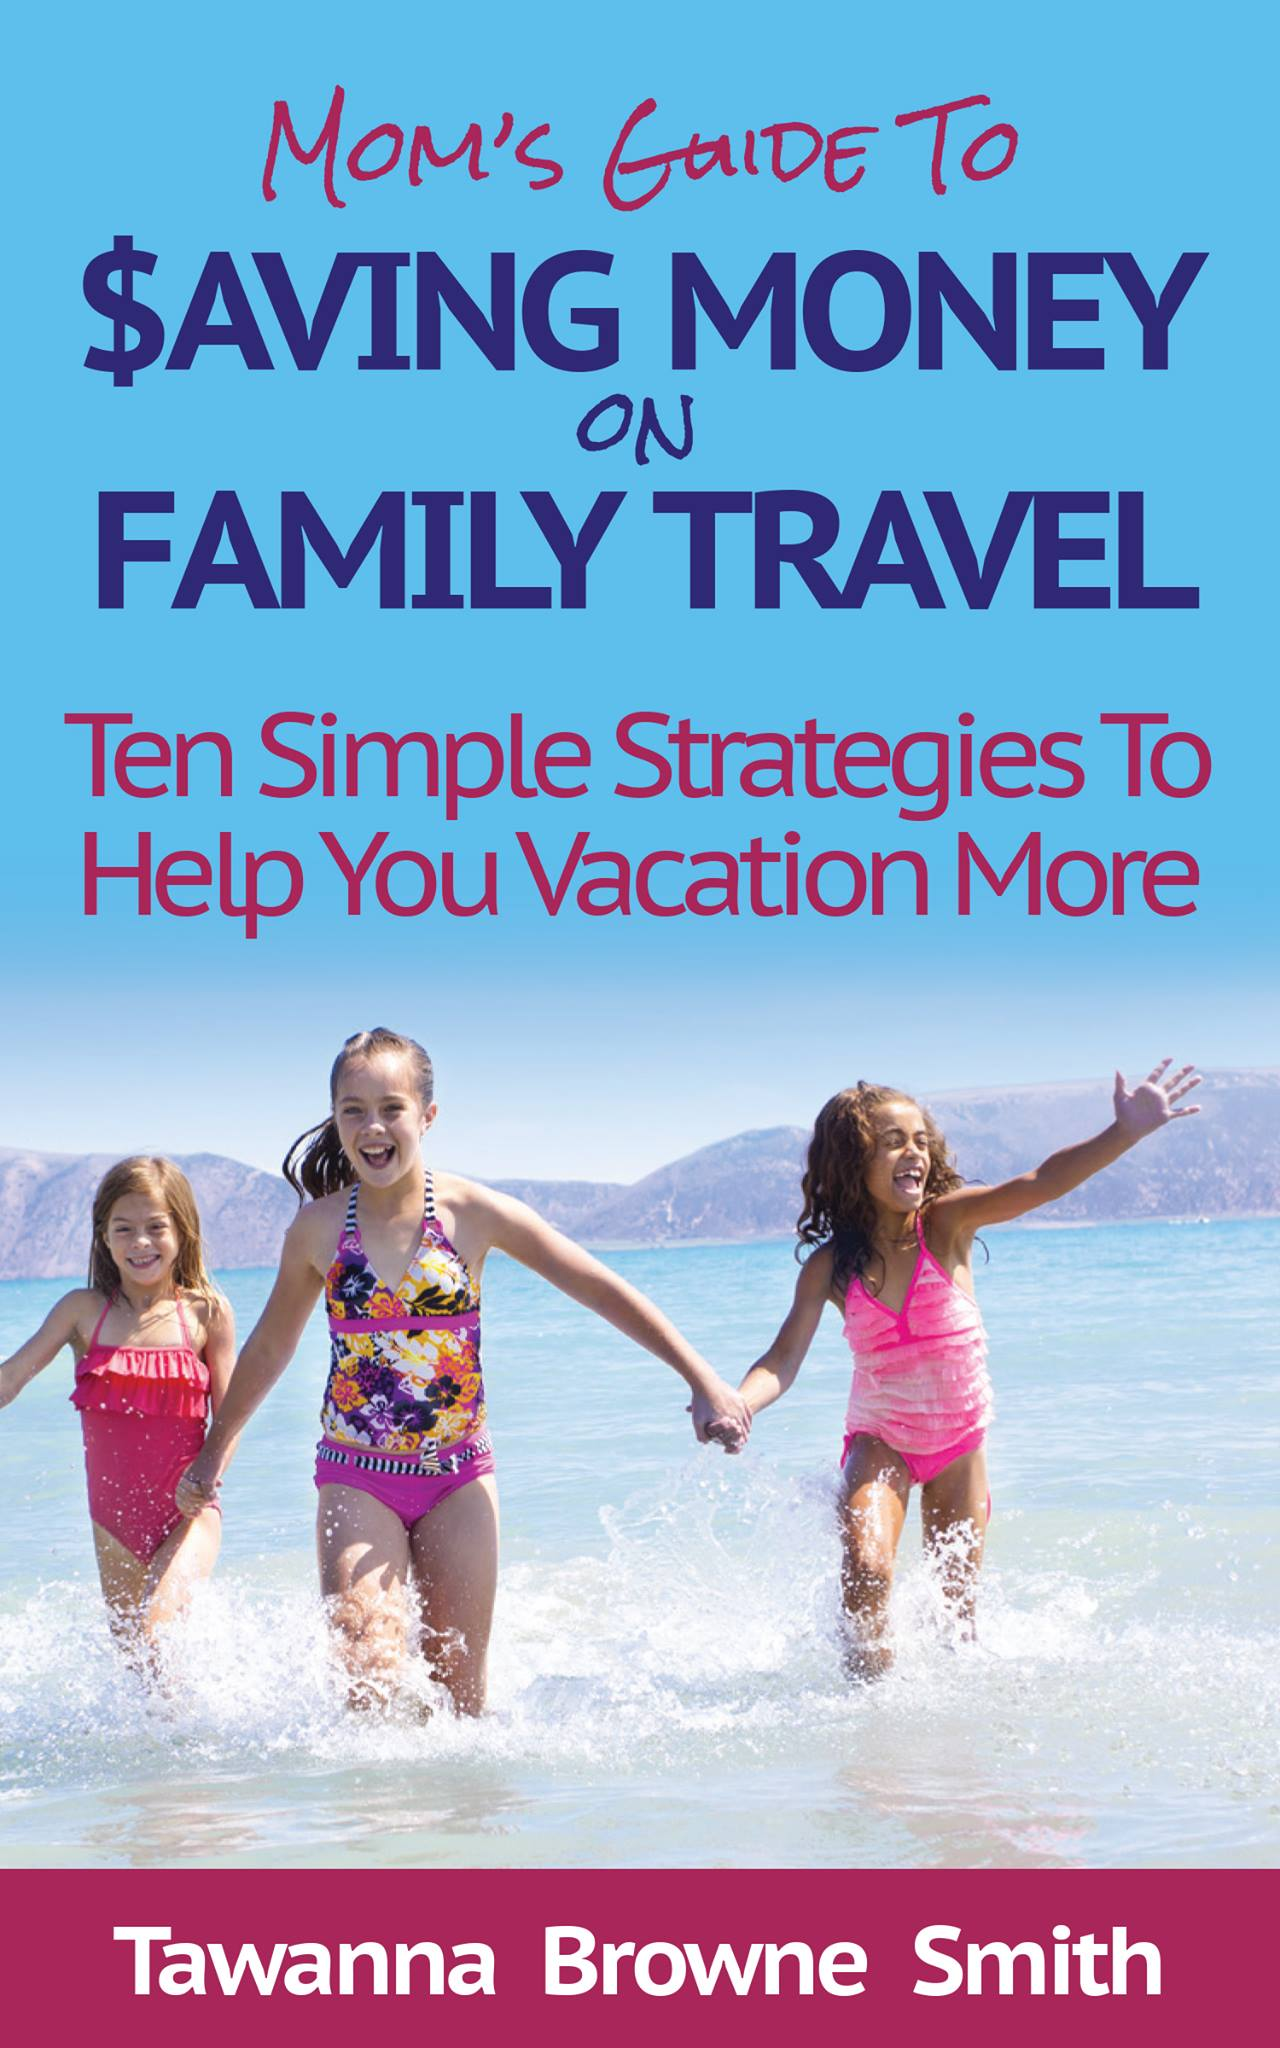 Moms Guide to Saving Money on Family Travel